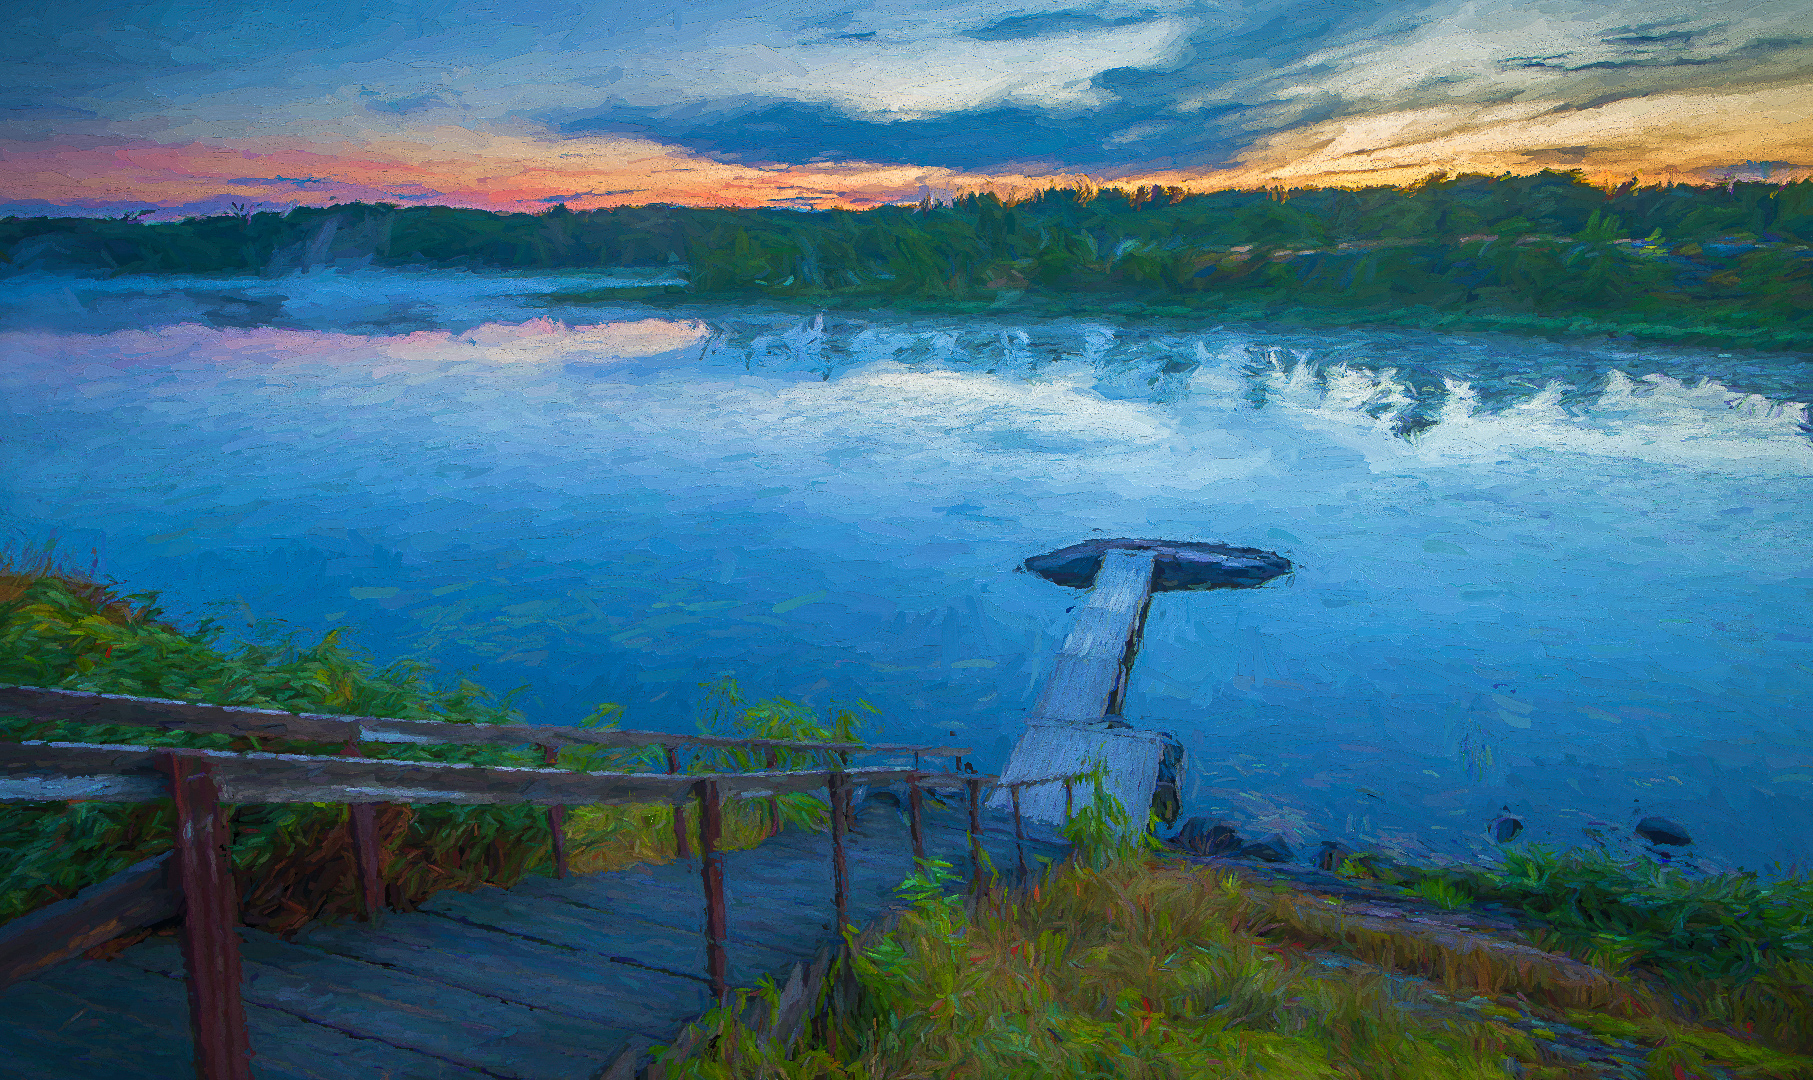 Sunrise on French river